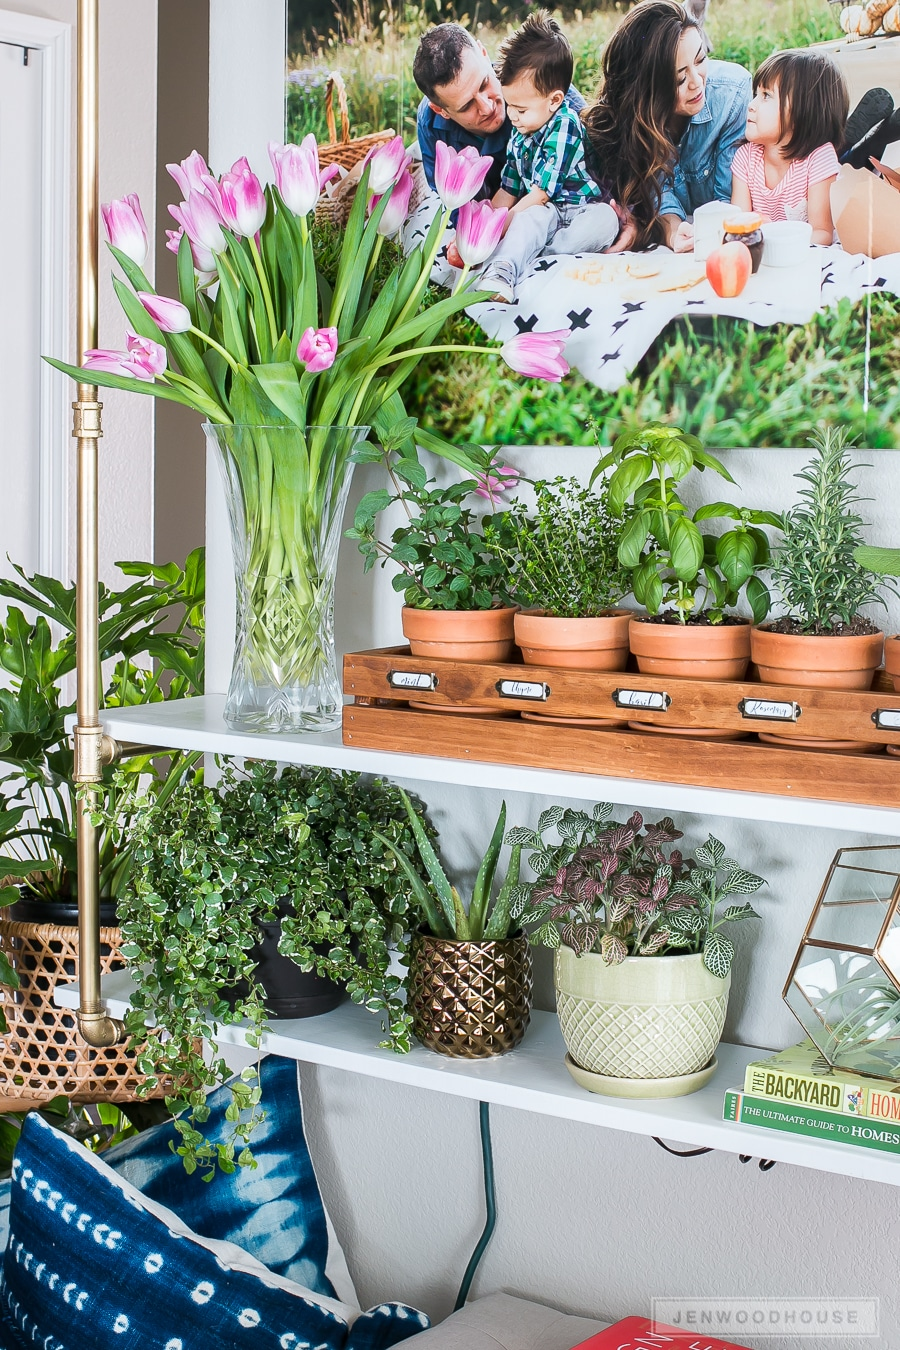 Add a fresh herb garden and a vase of tulips to decorate for Spring